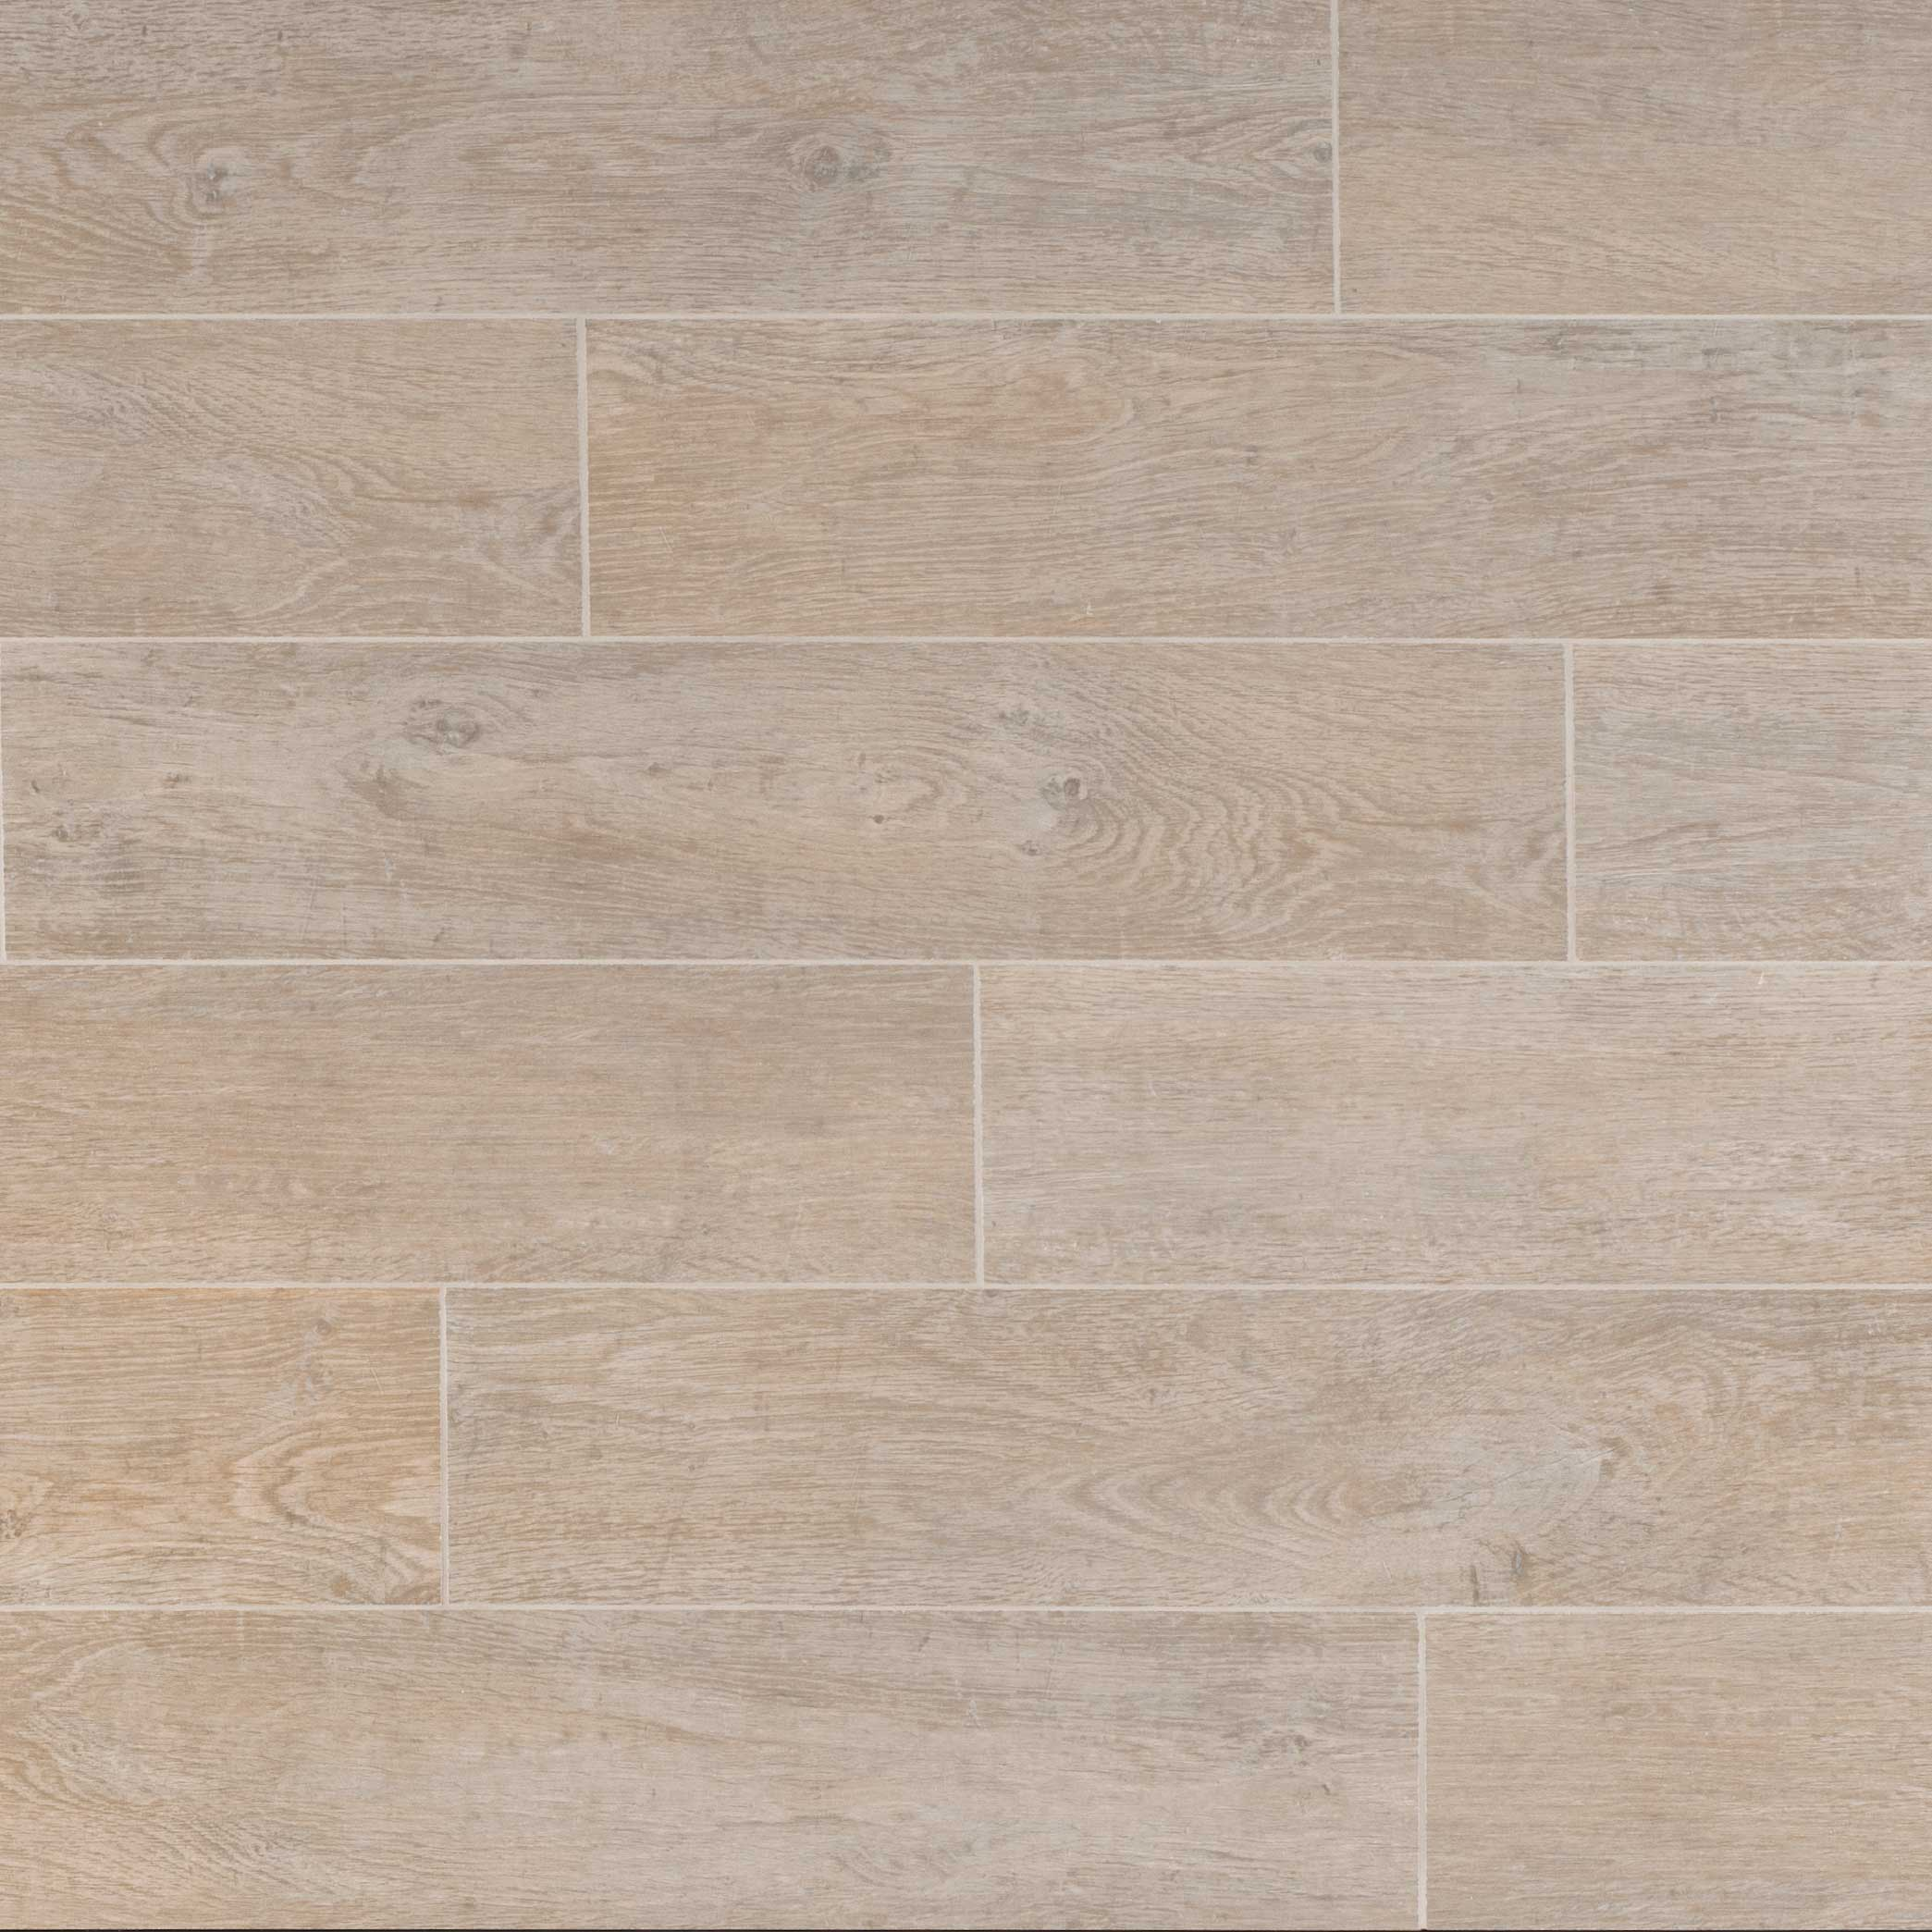 Lovely Collection Porcelain Stoneware With A Wooden